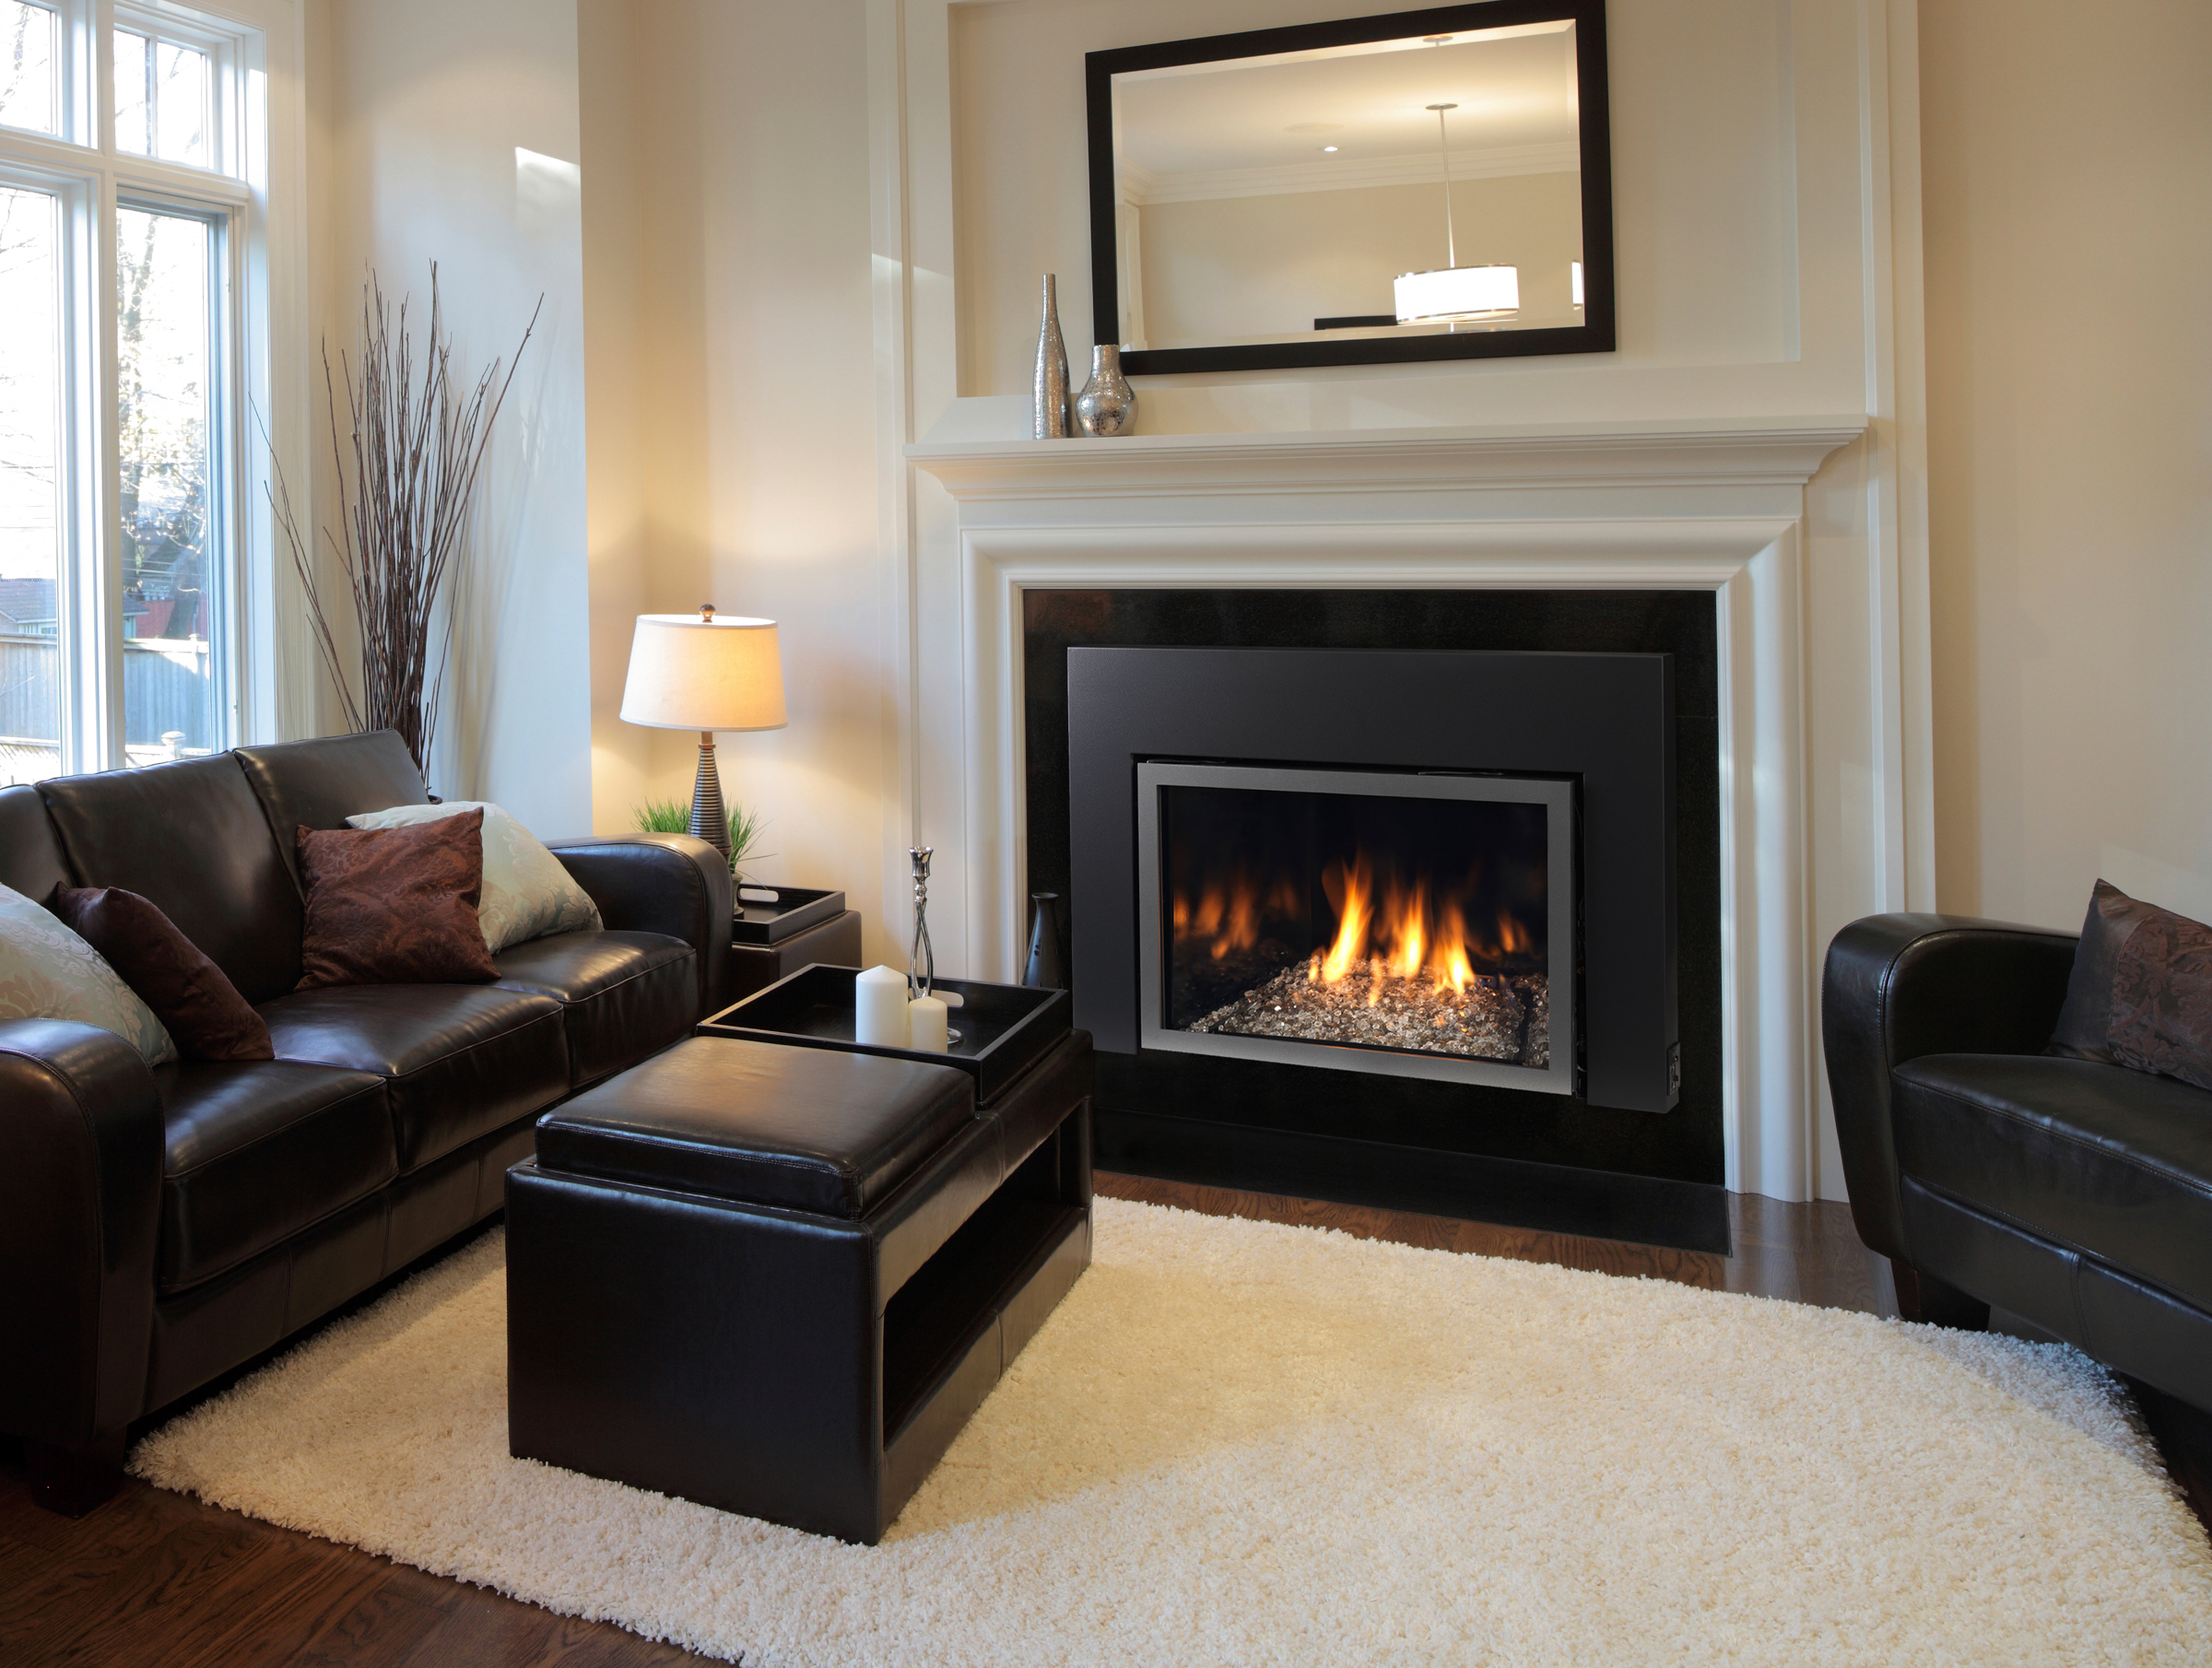 Fireplaces Add Value To Homes